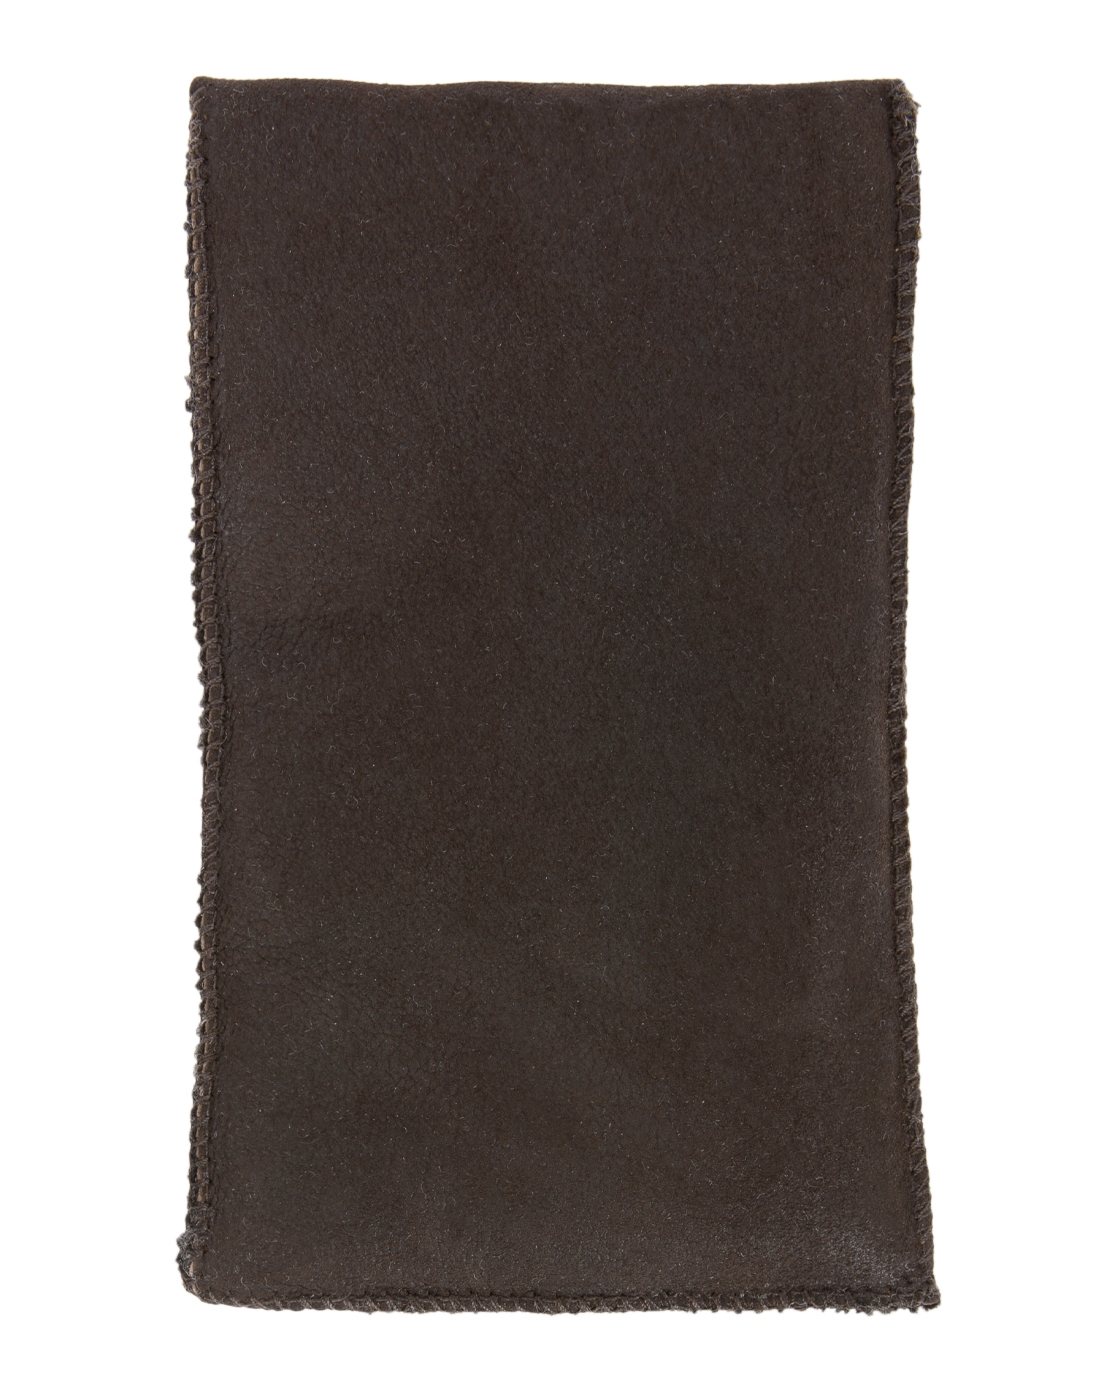 sheepskin glasses case_mocca_back.jpg